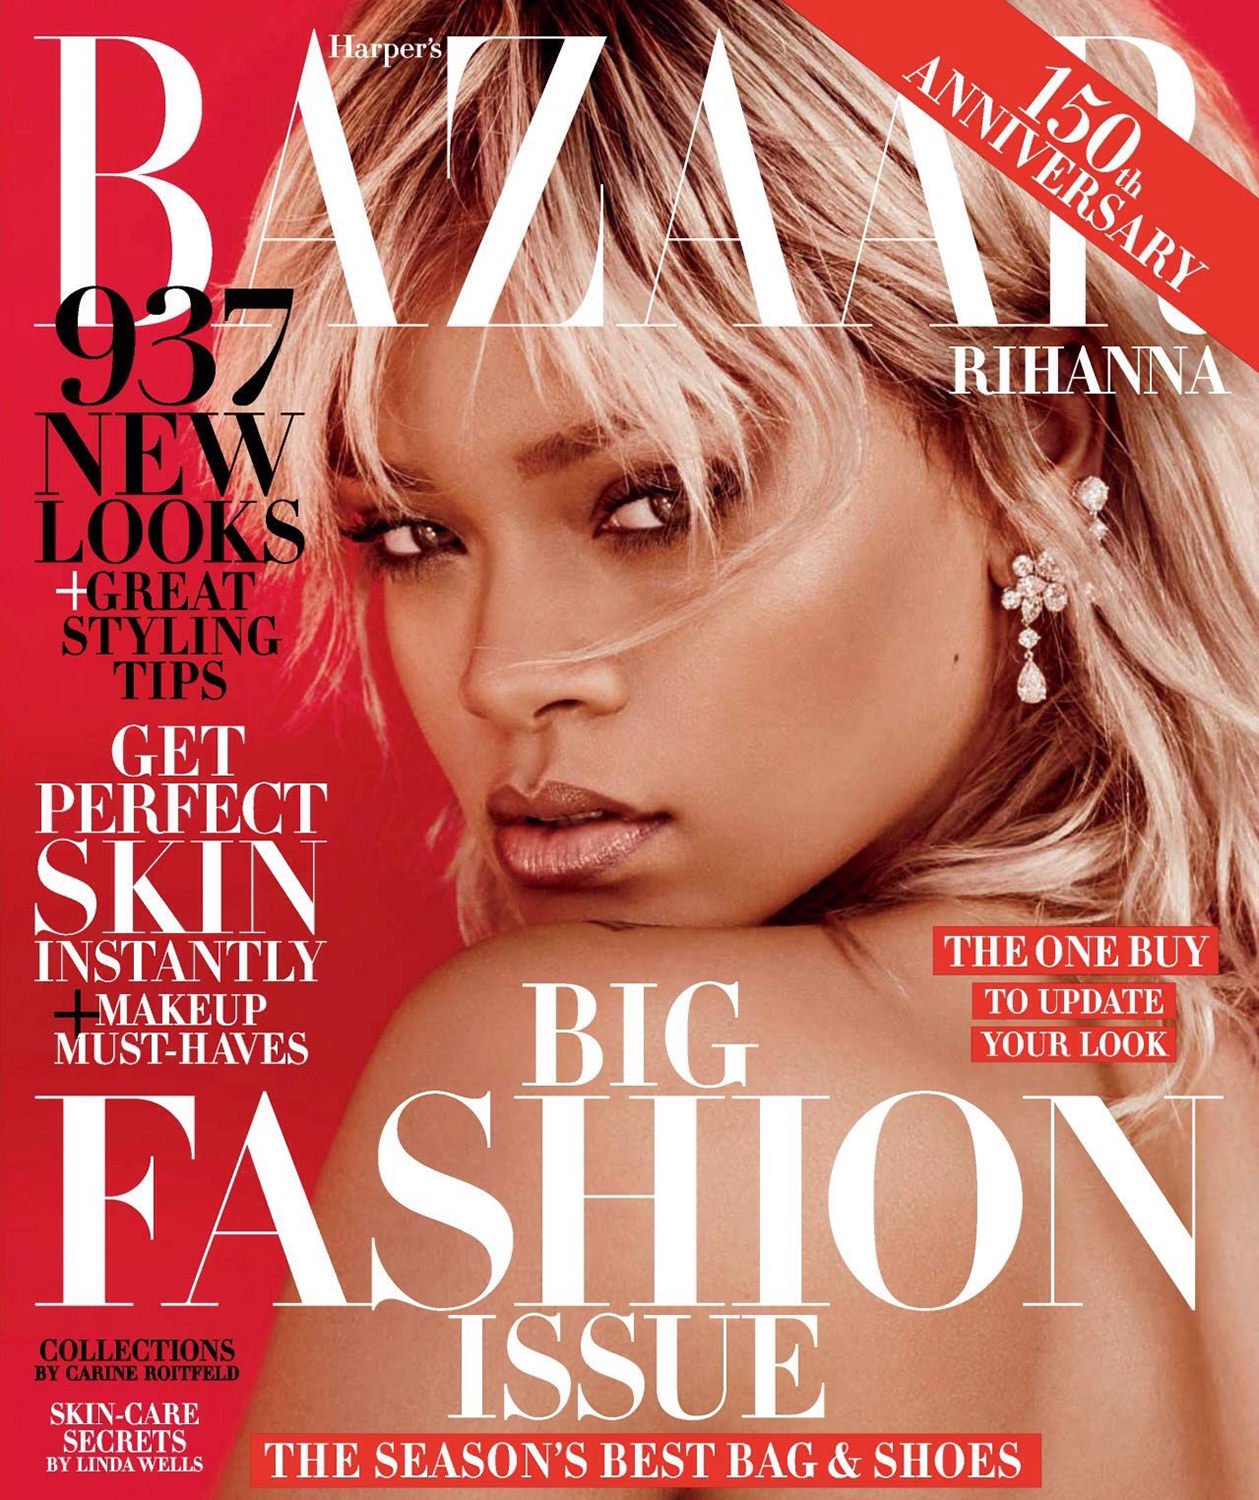 Rihanna Harper's Bazaar magazine cover March 2017